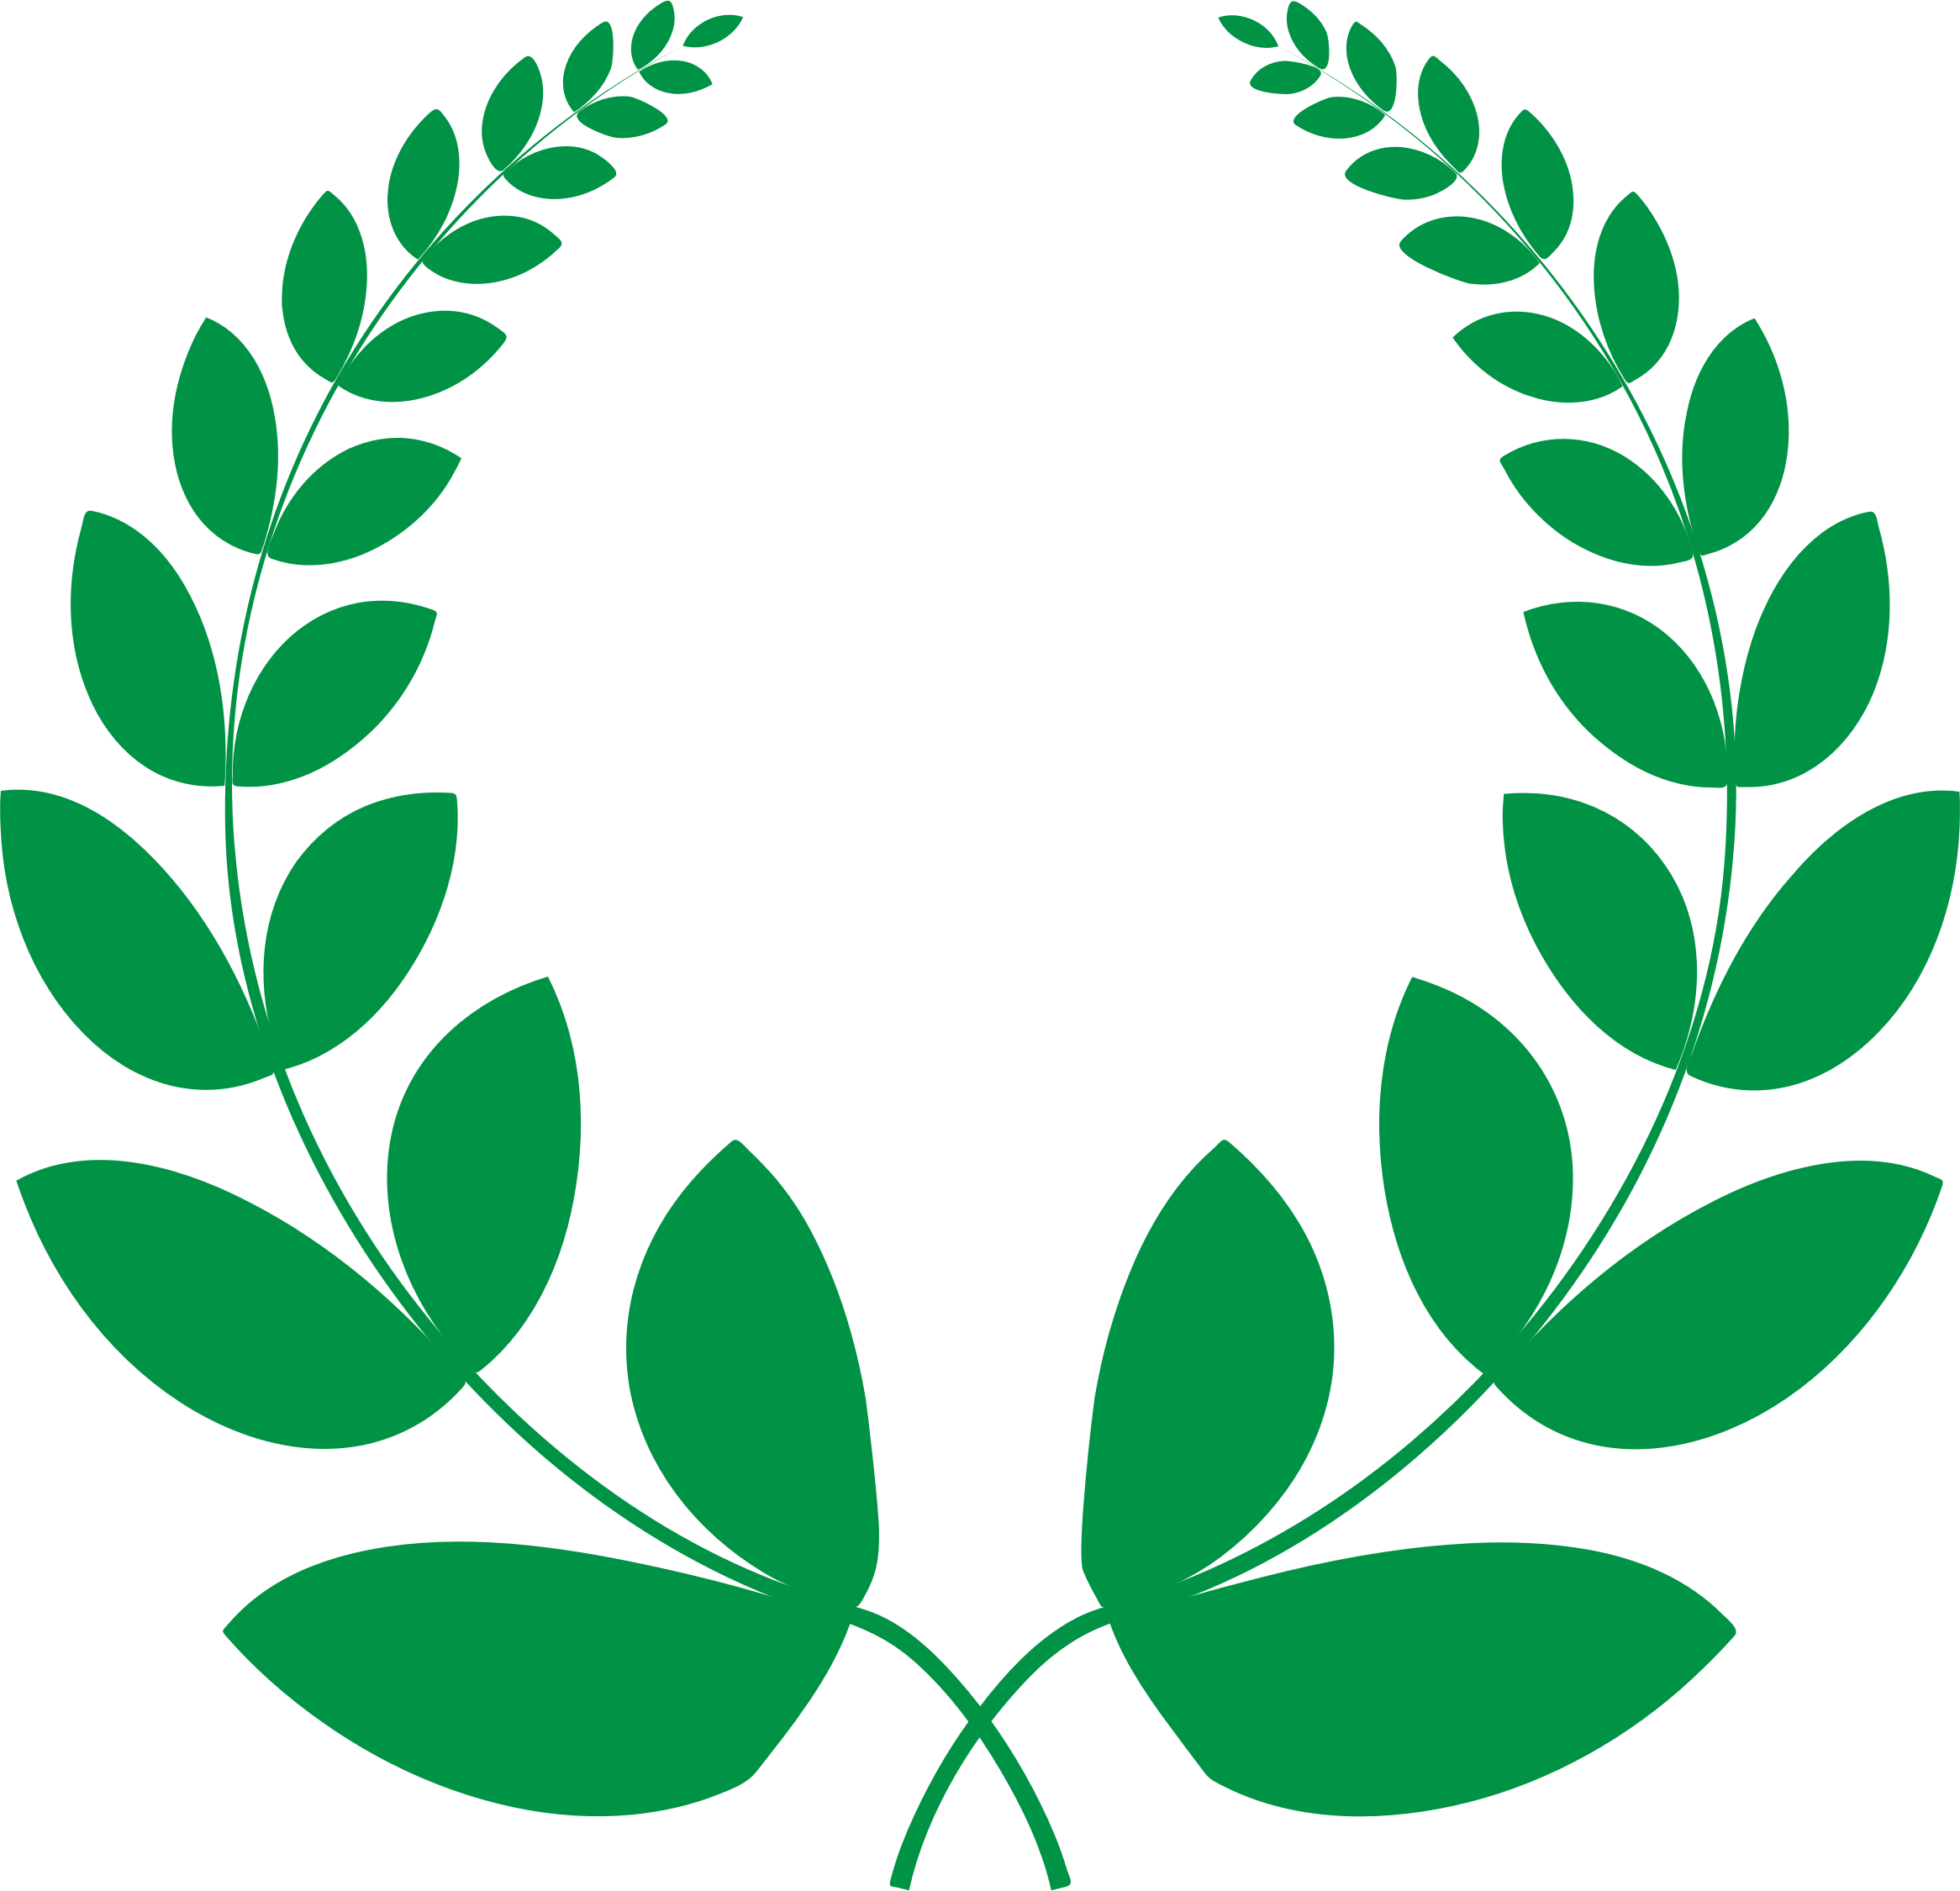 Laurel clipart pdf. Green wreath icons png